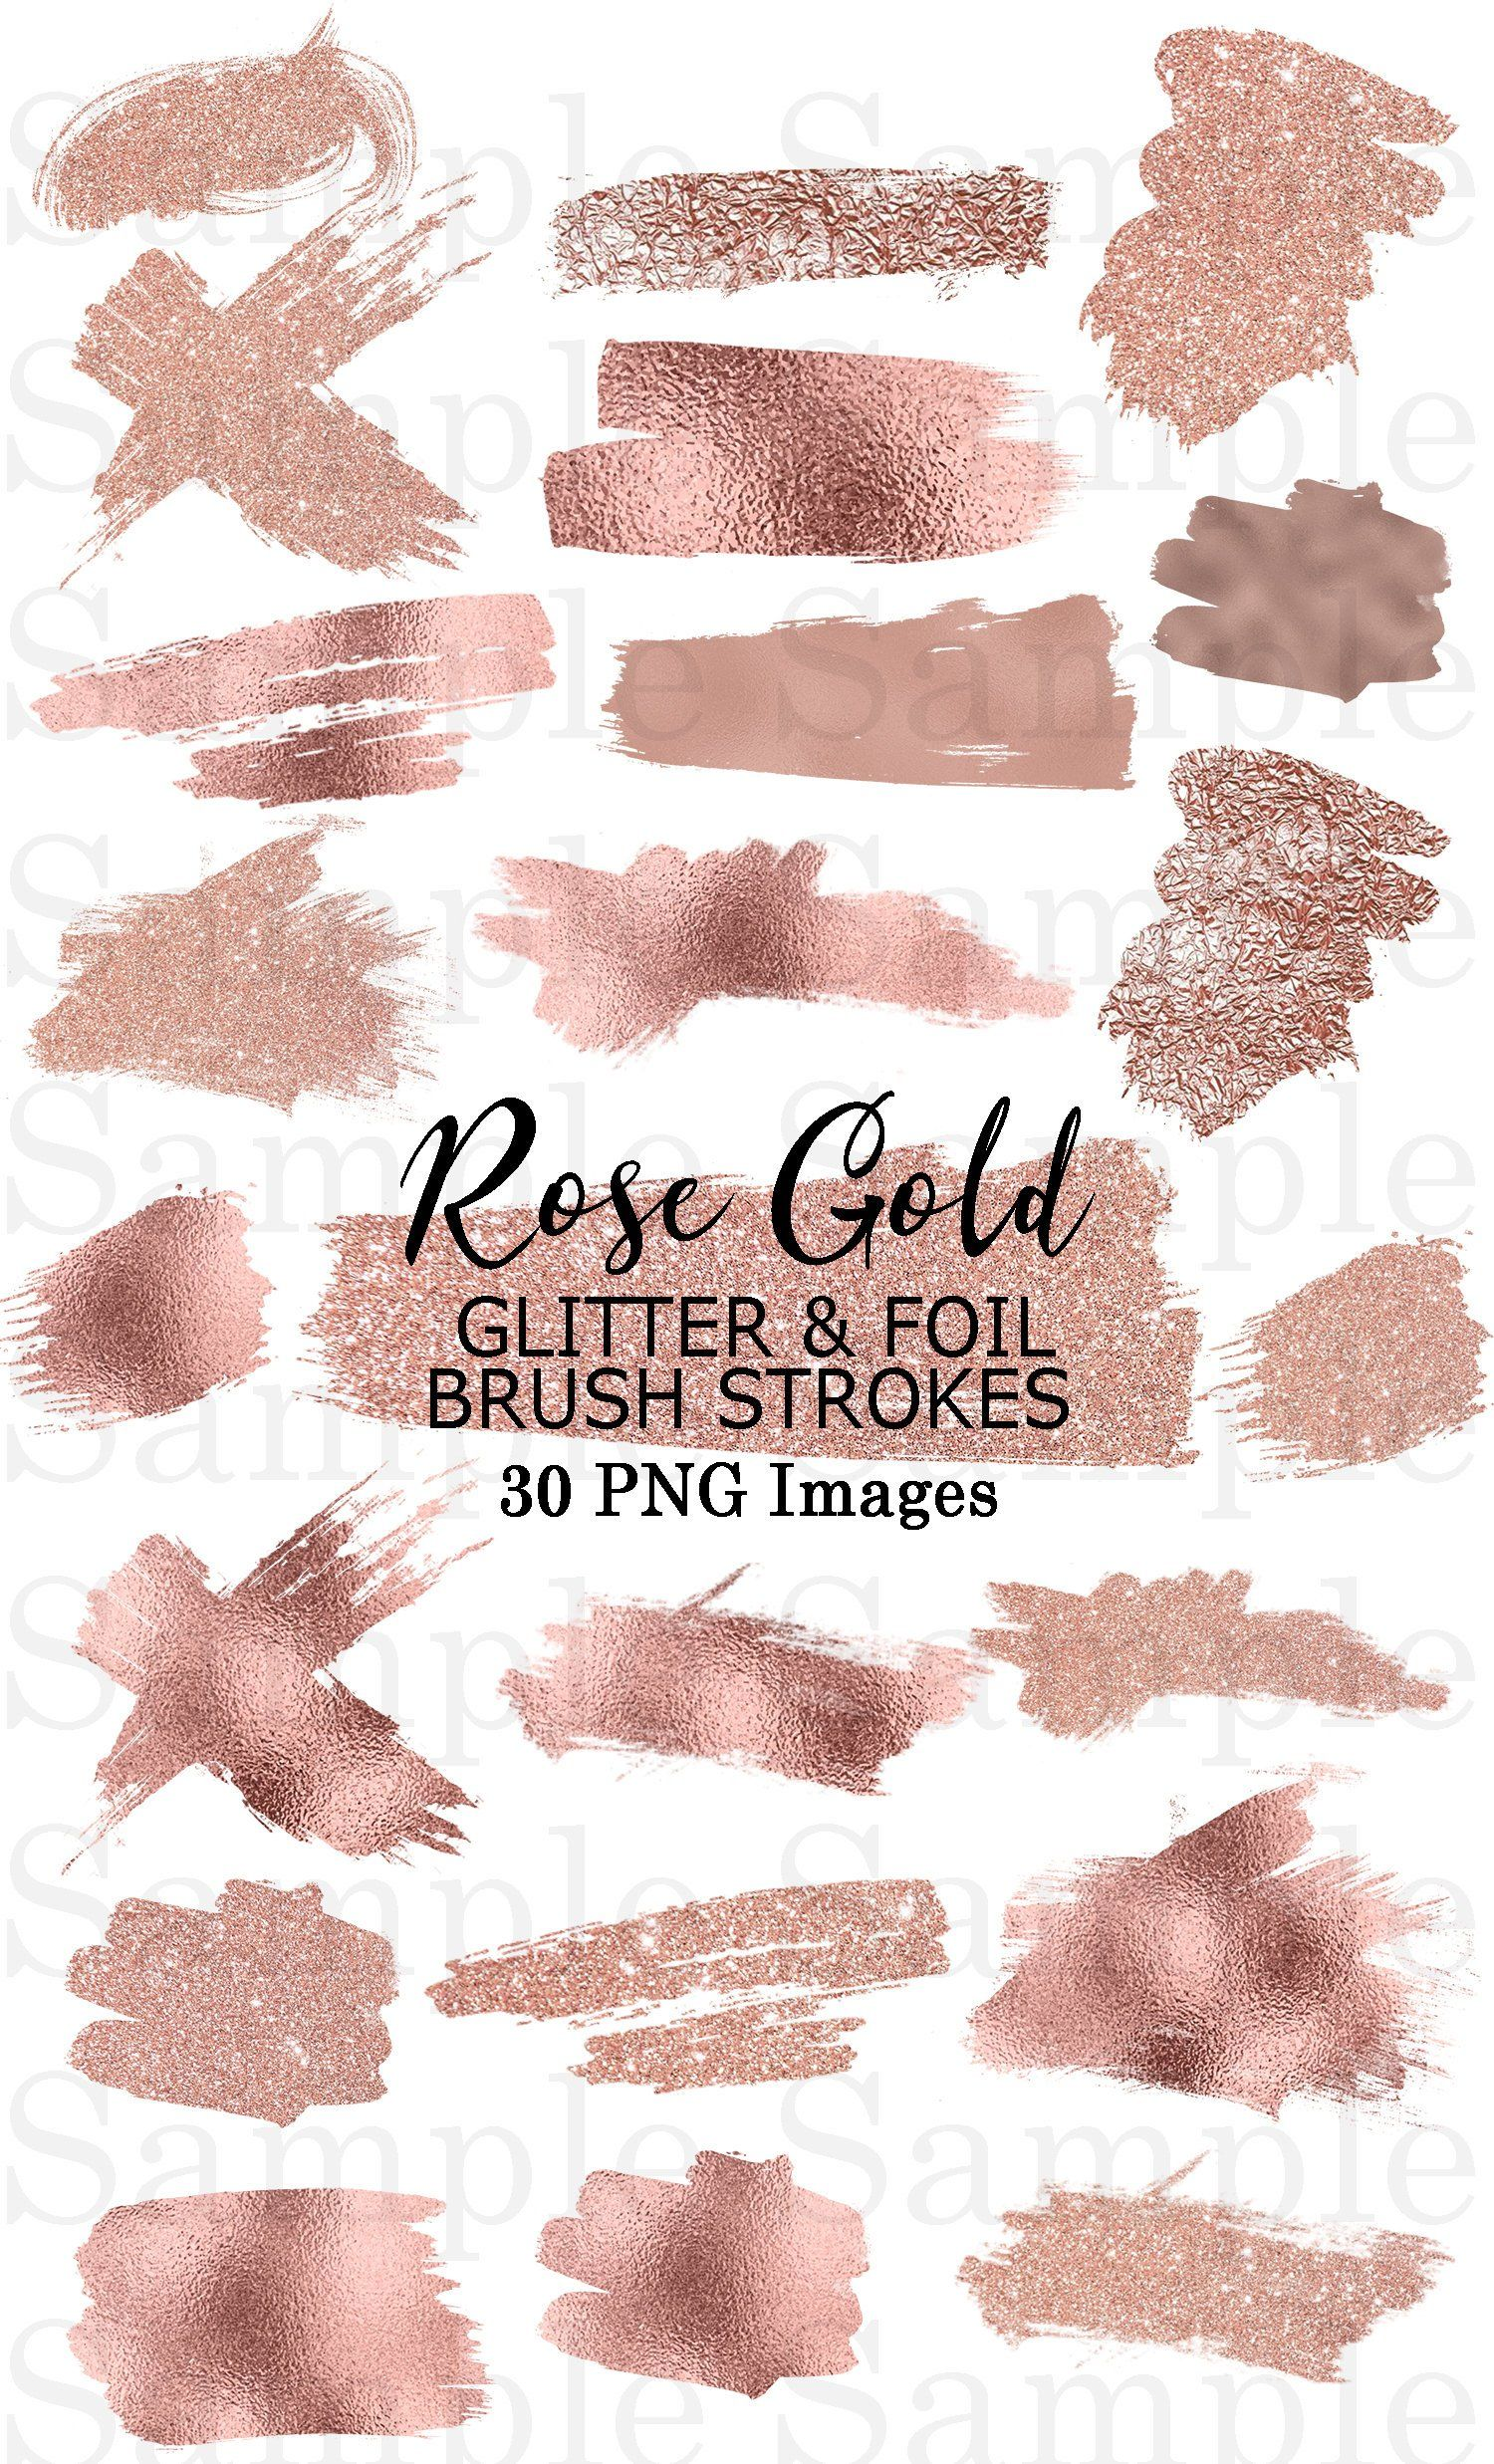 Rose gold foil clipart picture black and white Rose Gold Foil and Glitter Brush Strokes Clip Art #40 Hand ... picture black and white